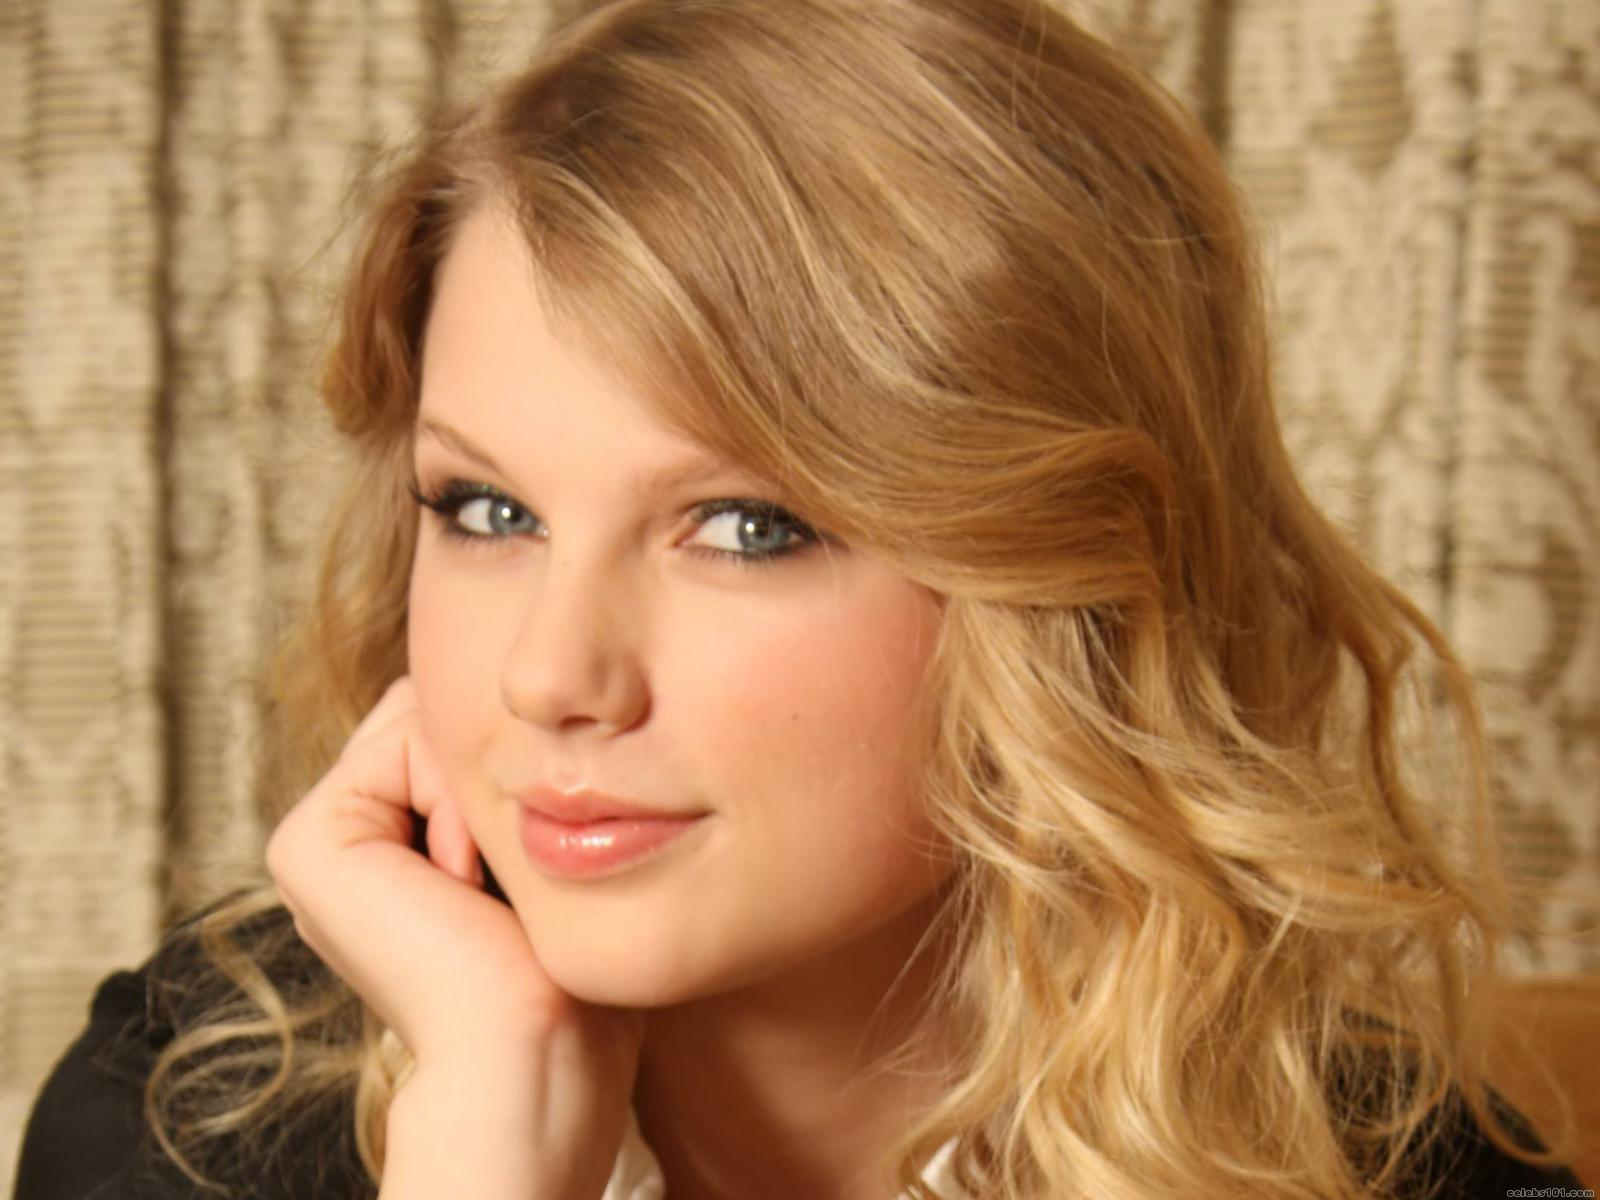 Download Free Wallpapers For Taylor Swifts New Album Speak Now